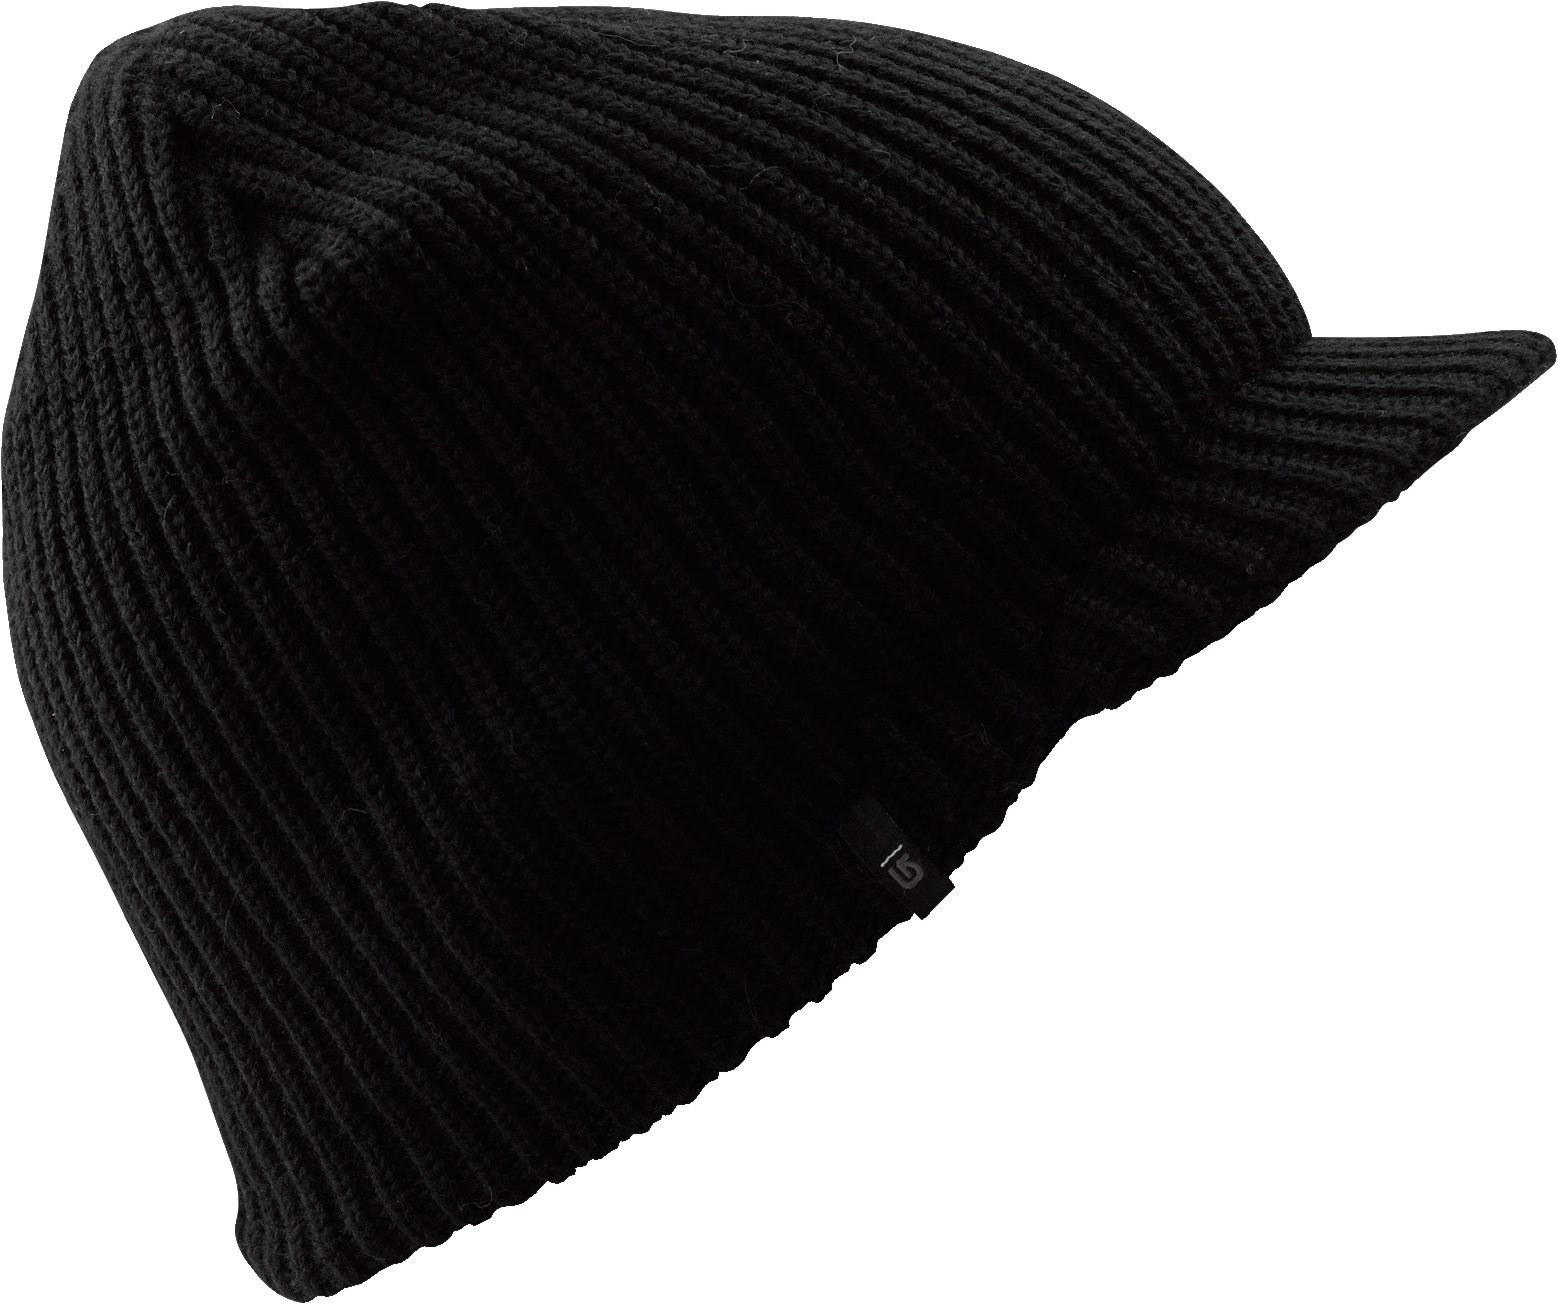 Snowboard Key Features of the Burton Ledge Beanie: 100% Acrylic Brimmed Beanie Skully Fit - $25.00